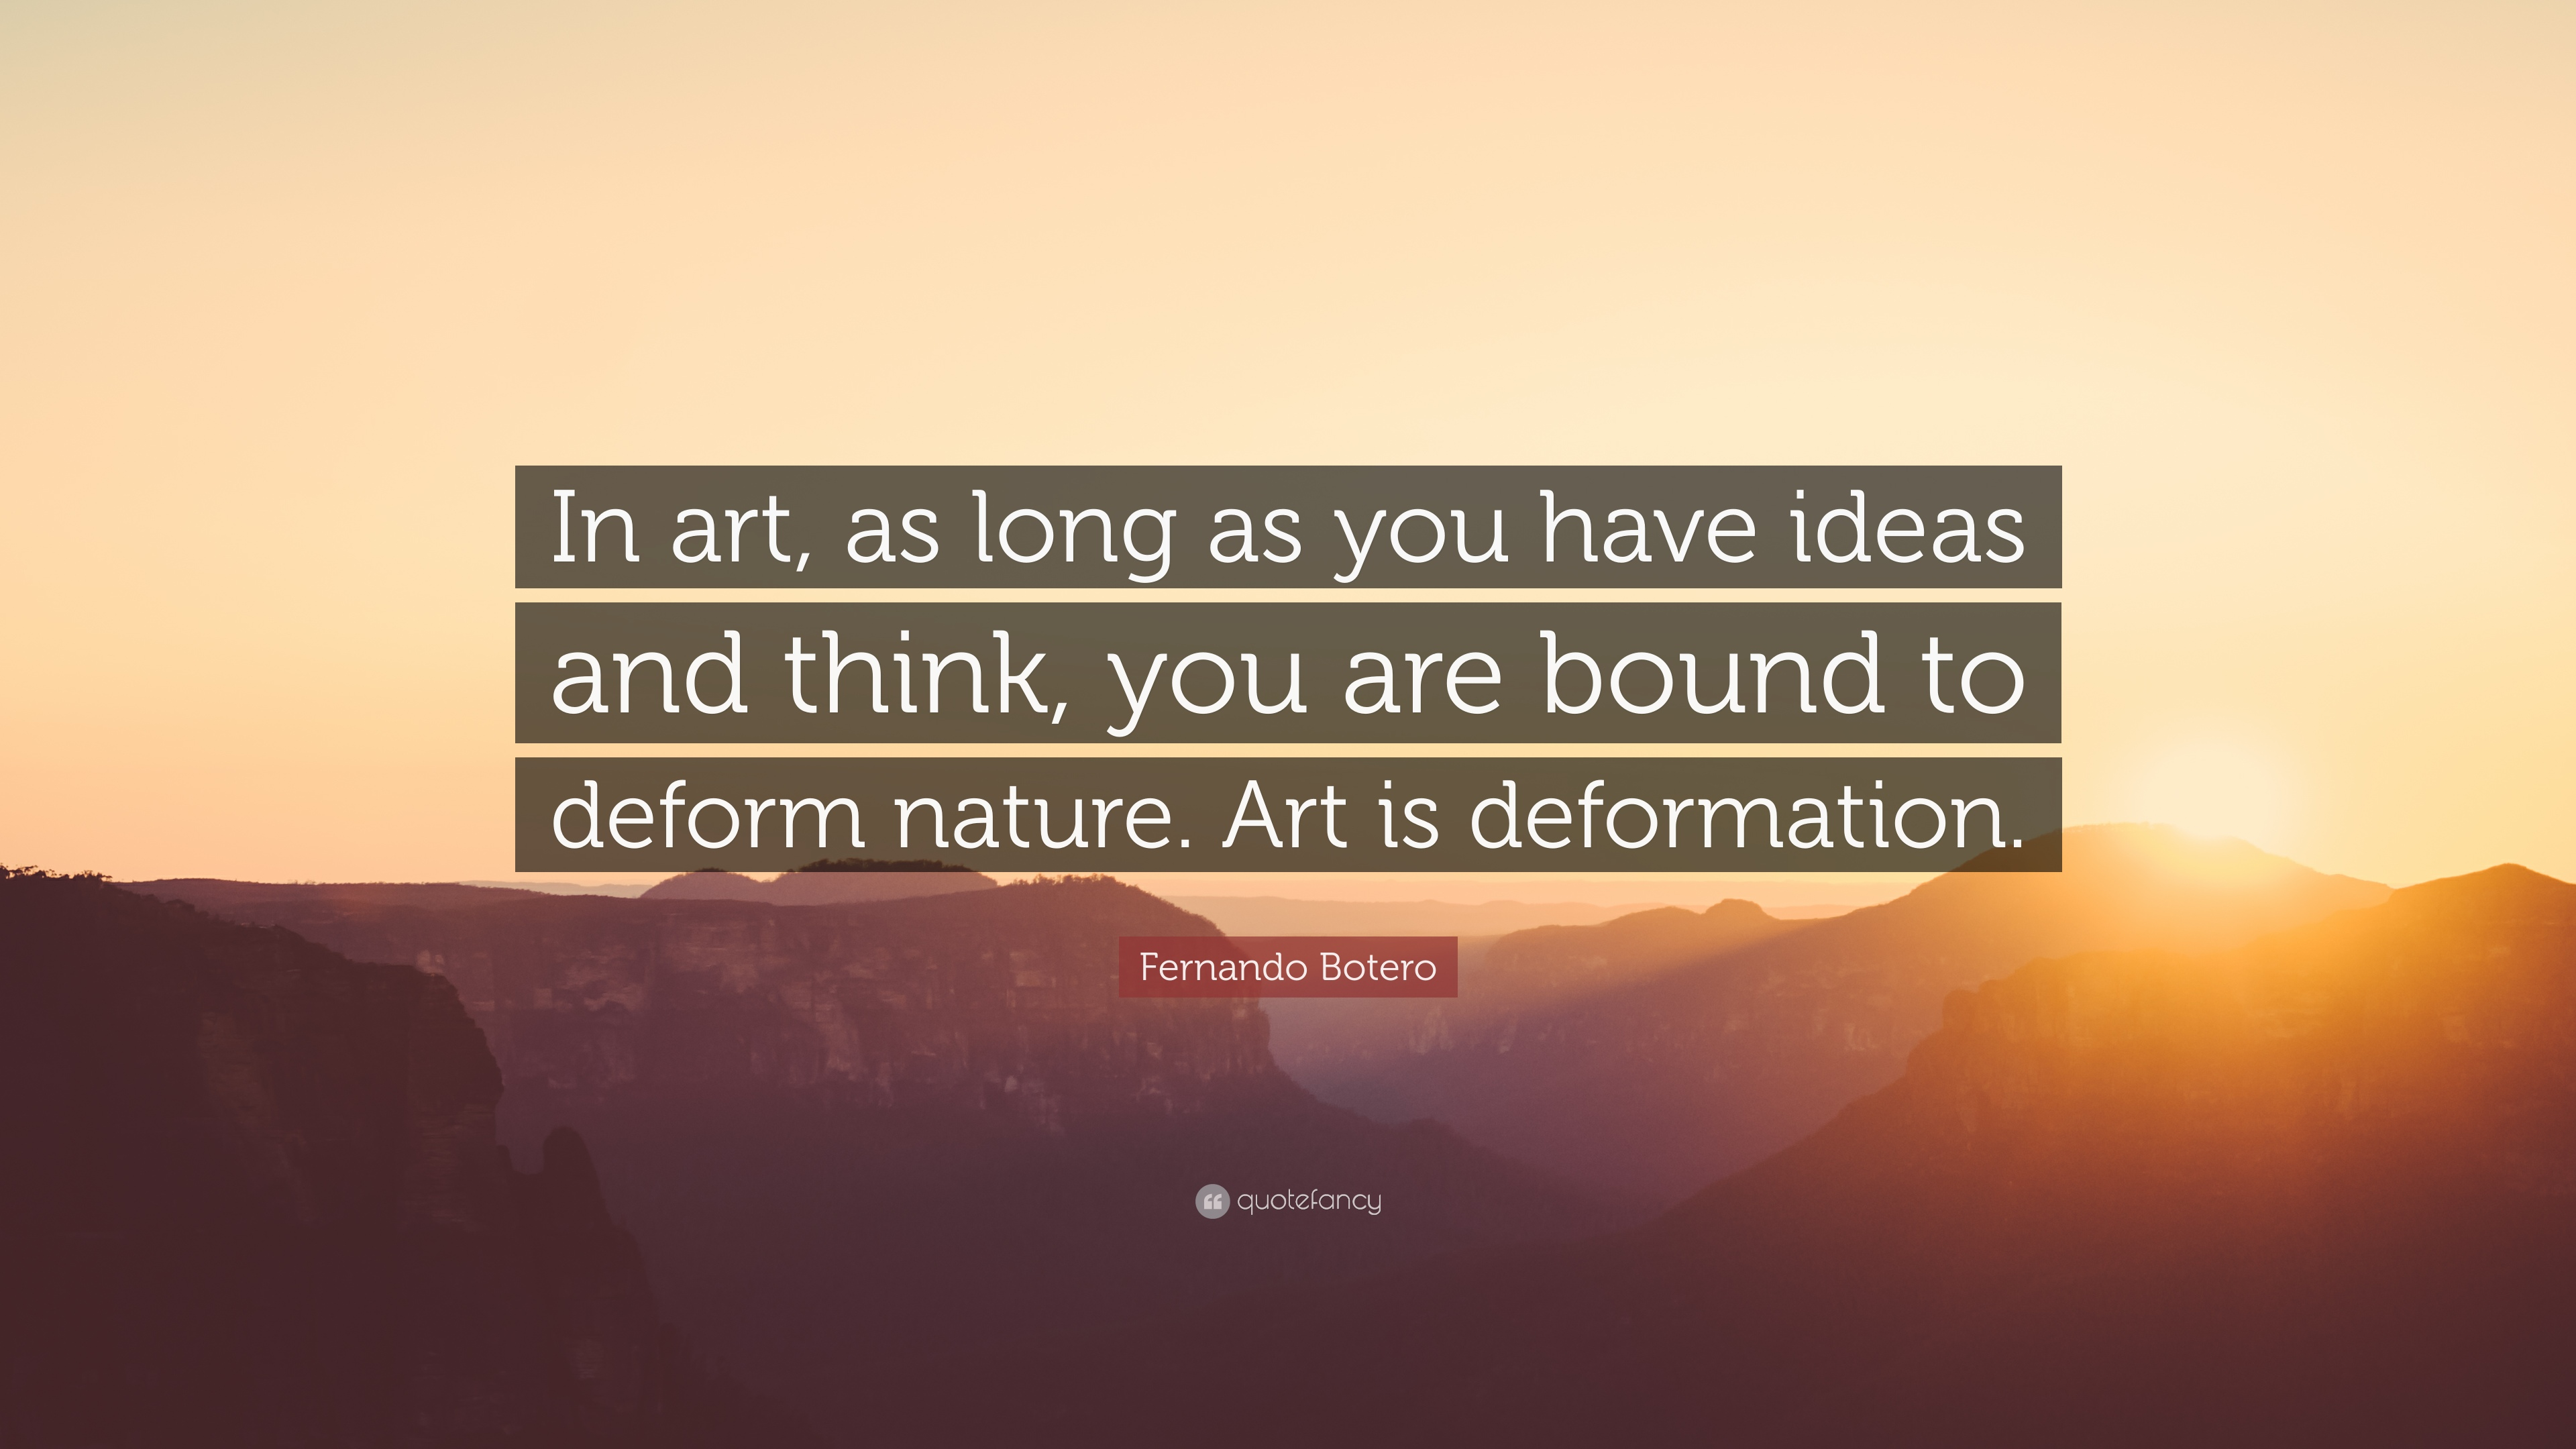 Fernando Botero Quote In Art As Long As You Have Ideas And Think